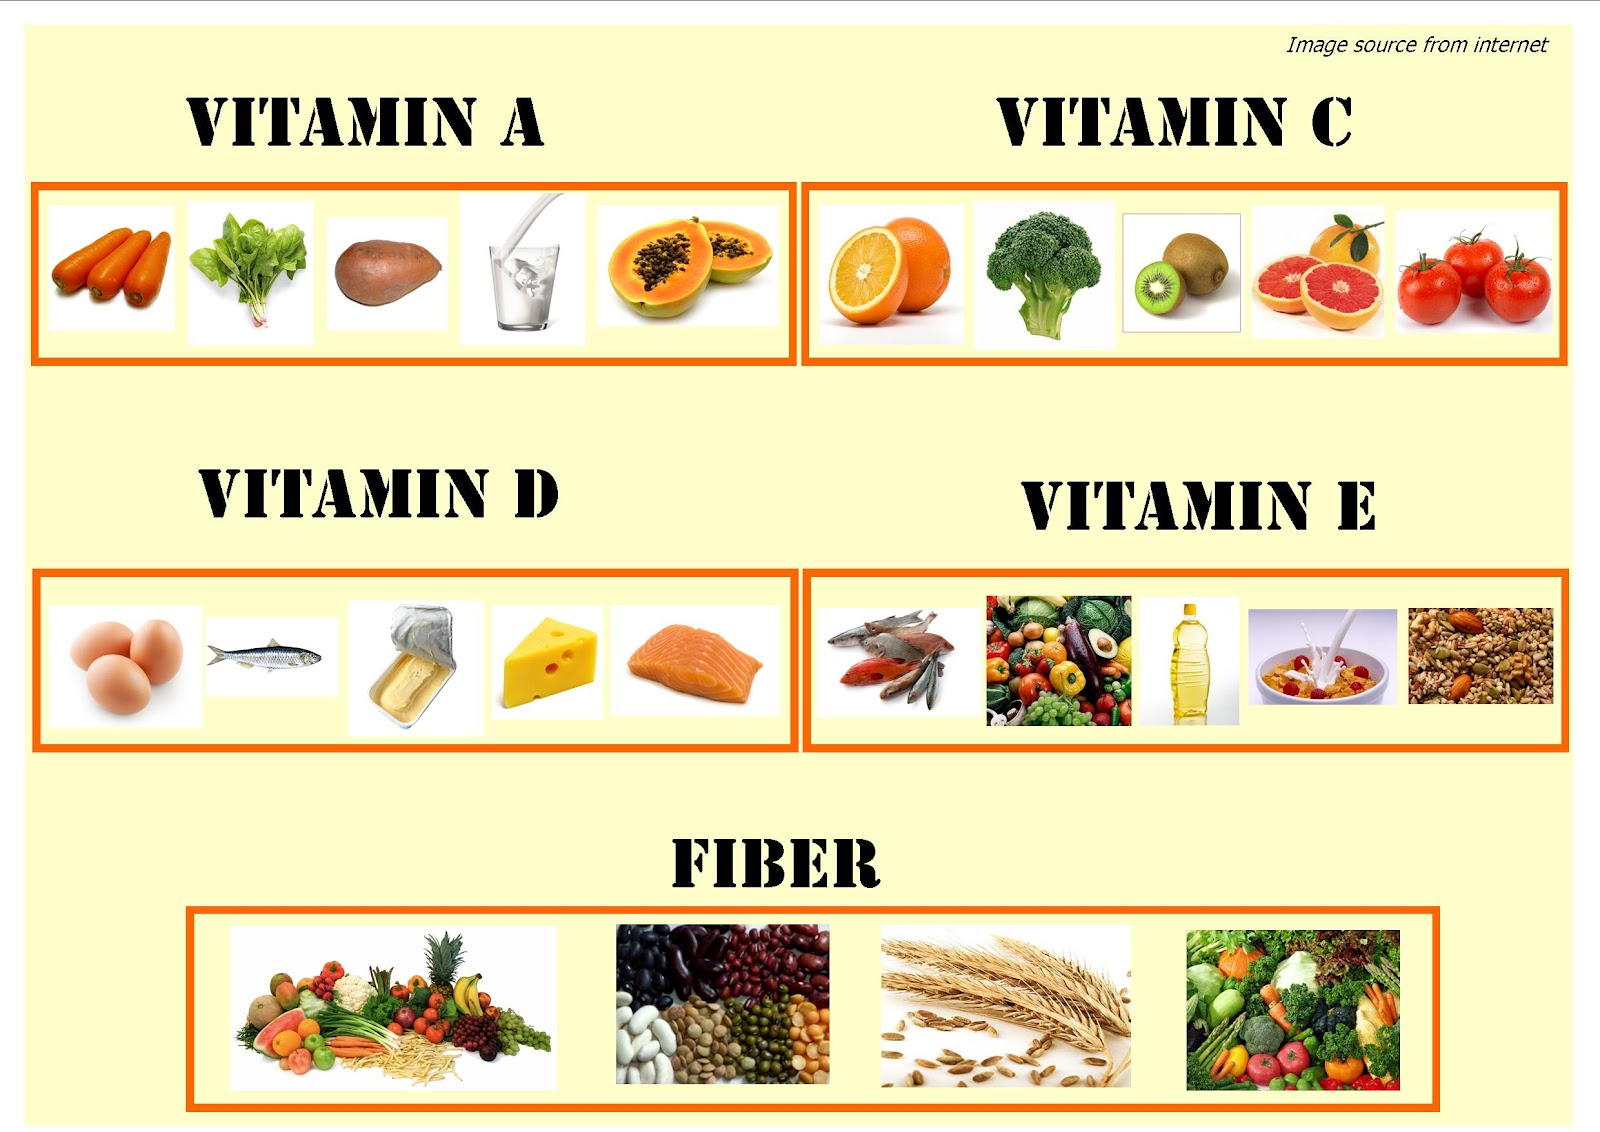 Fruits And Vegetables Containing Vitamin E Enuca anti ageing skin care what works best friday 1 june 2012 workwithnaturefo